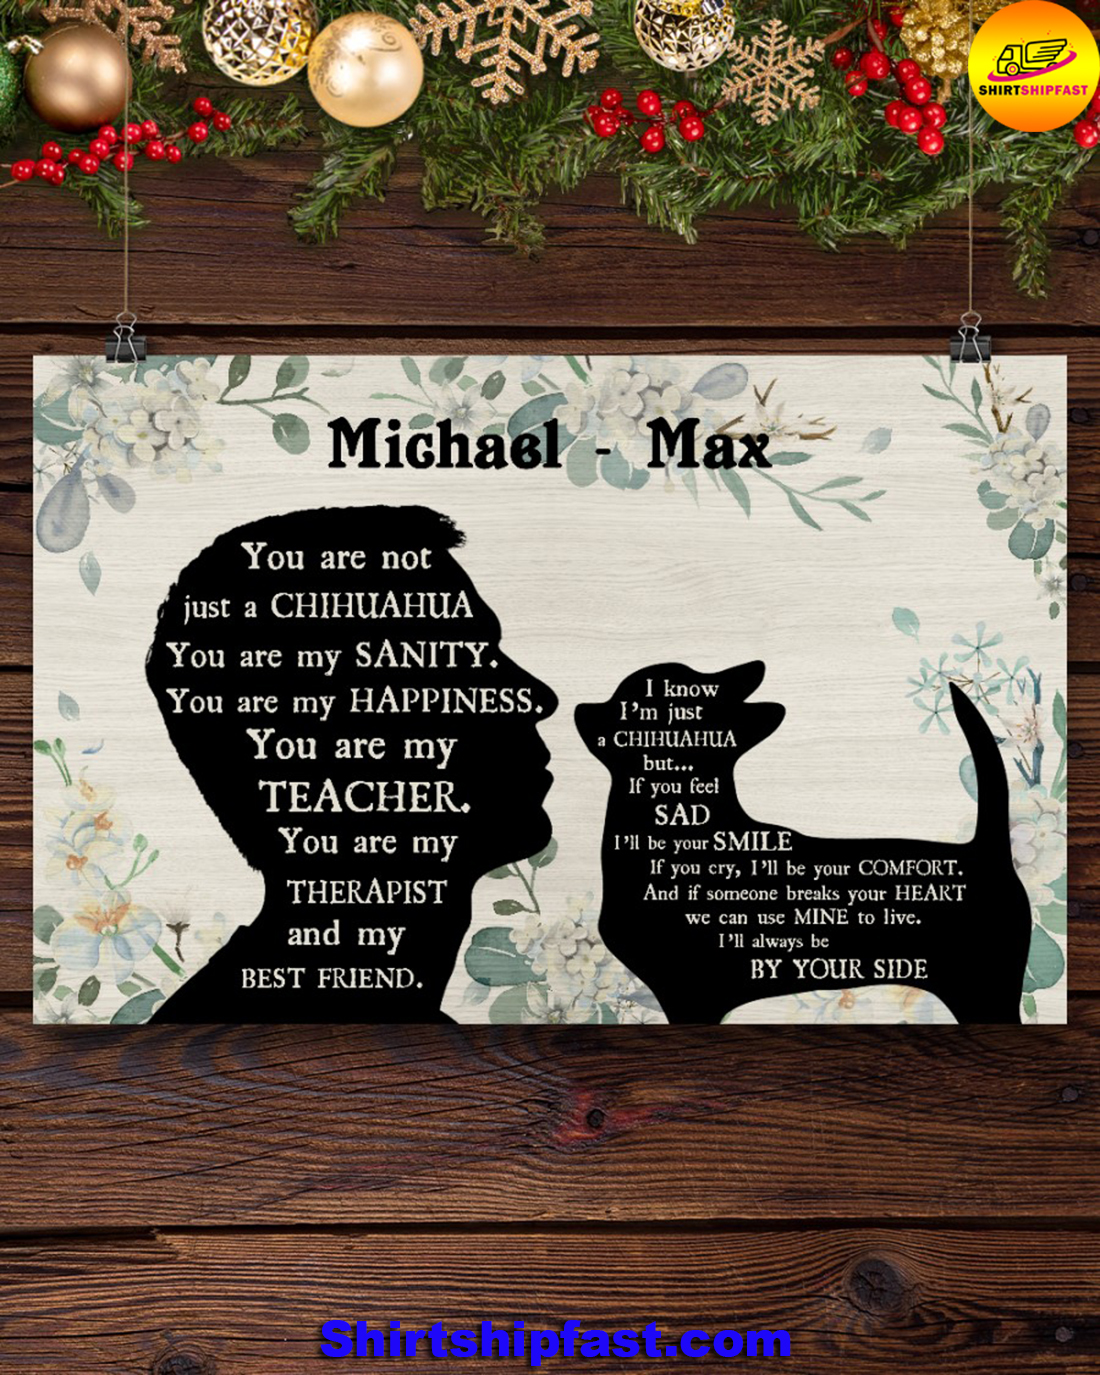 Male You are not just a chihuahua personalized poster - Picture 1